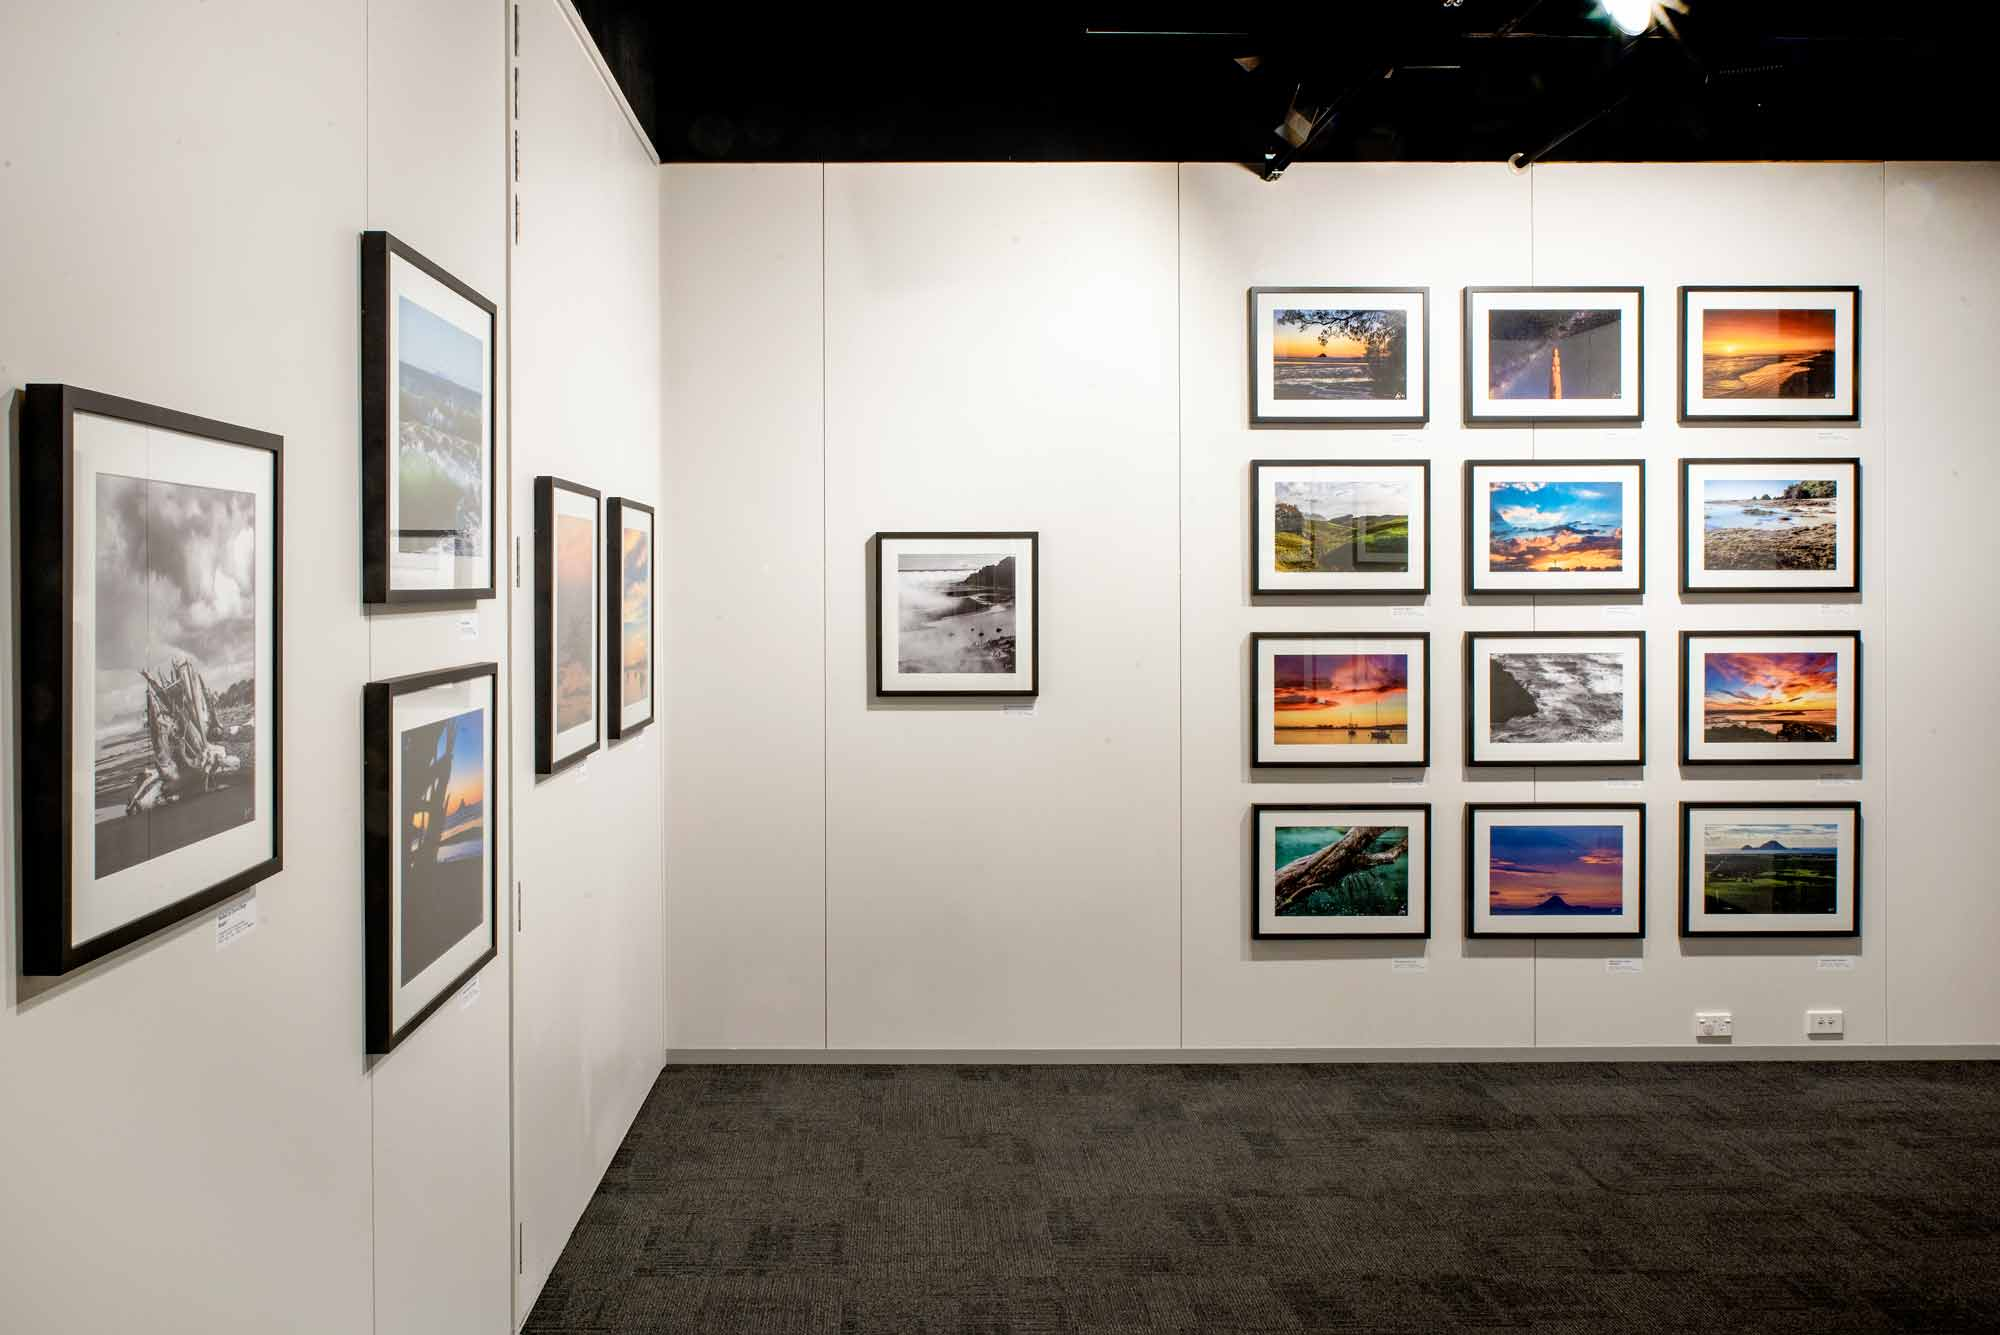 Image by  Troy Baker Photography , Supplied Courtesy of  Whakatane Museum and Arts .